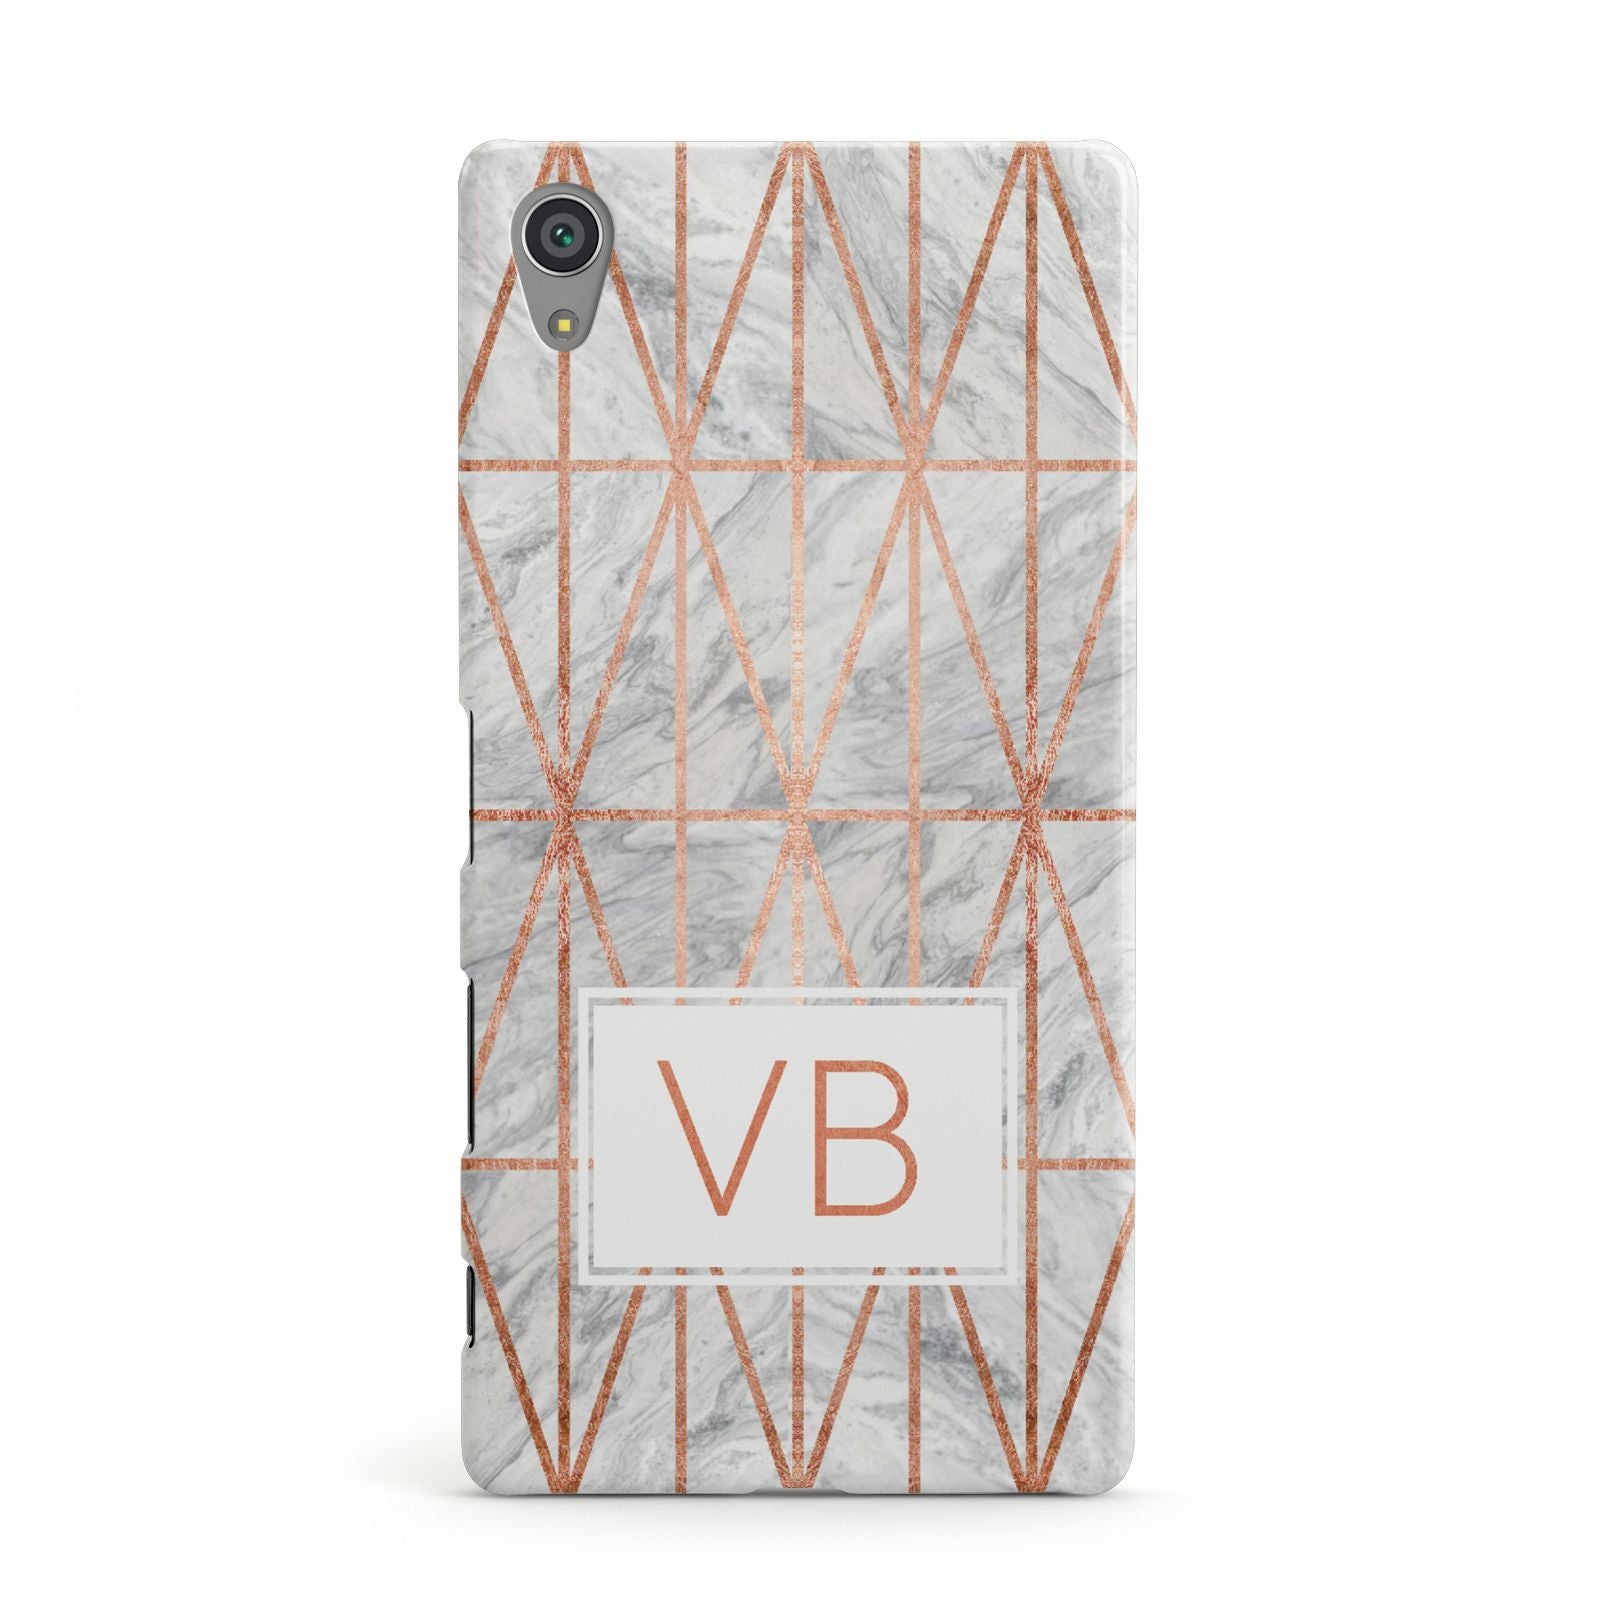 Personalised Triangular Marble Initials Sony Xperia Case